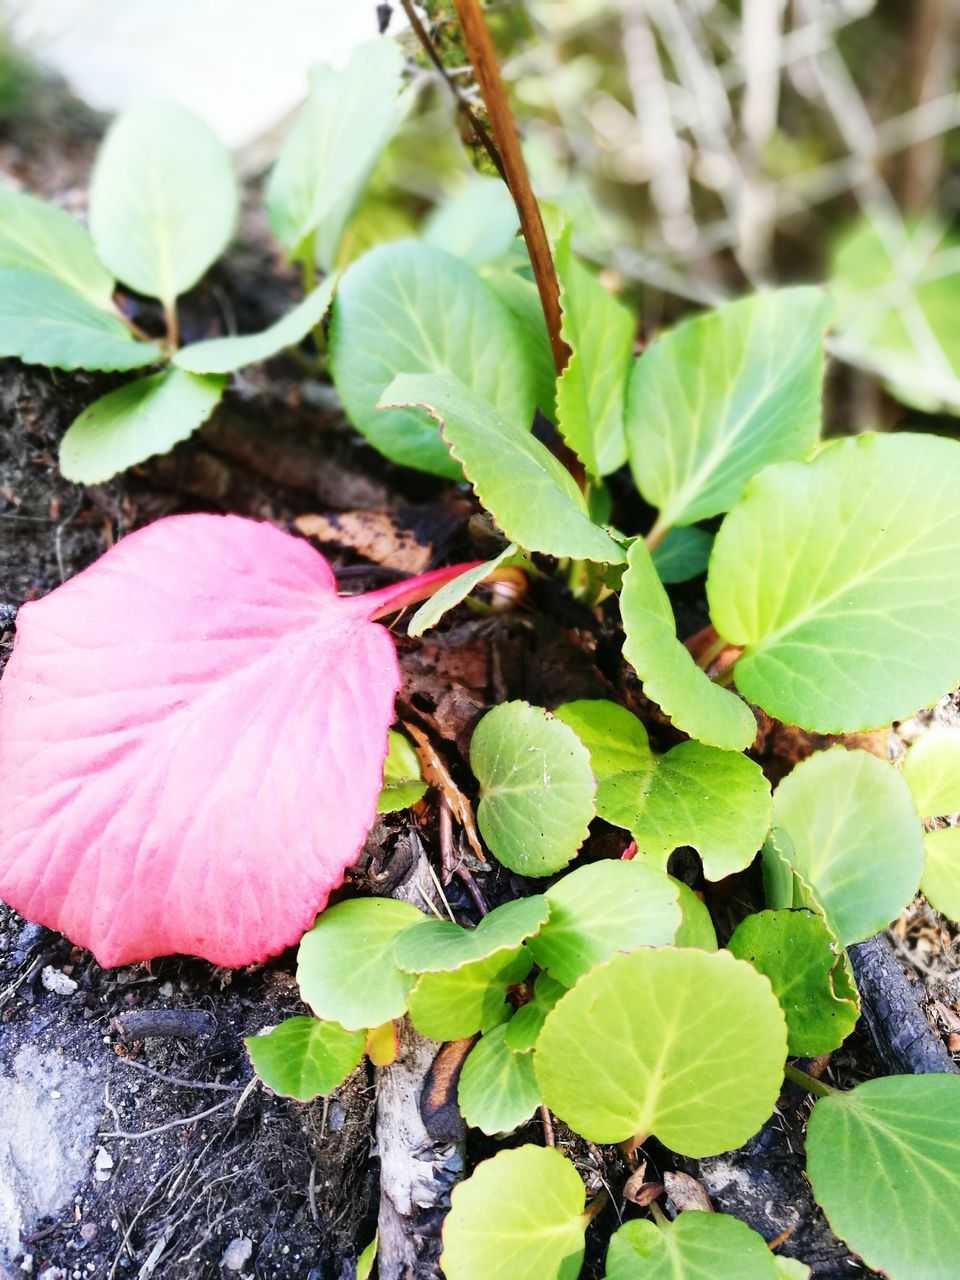 leaf, plant, fragility, growth, nature, freshness, high angle view, day, green color, petal, beauty in nature, close-up, outdoors, no people, flower, flower head, blooming, animal themes, periwinkle